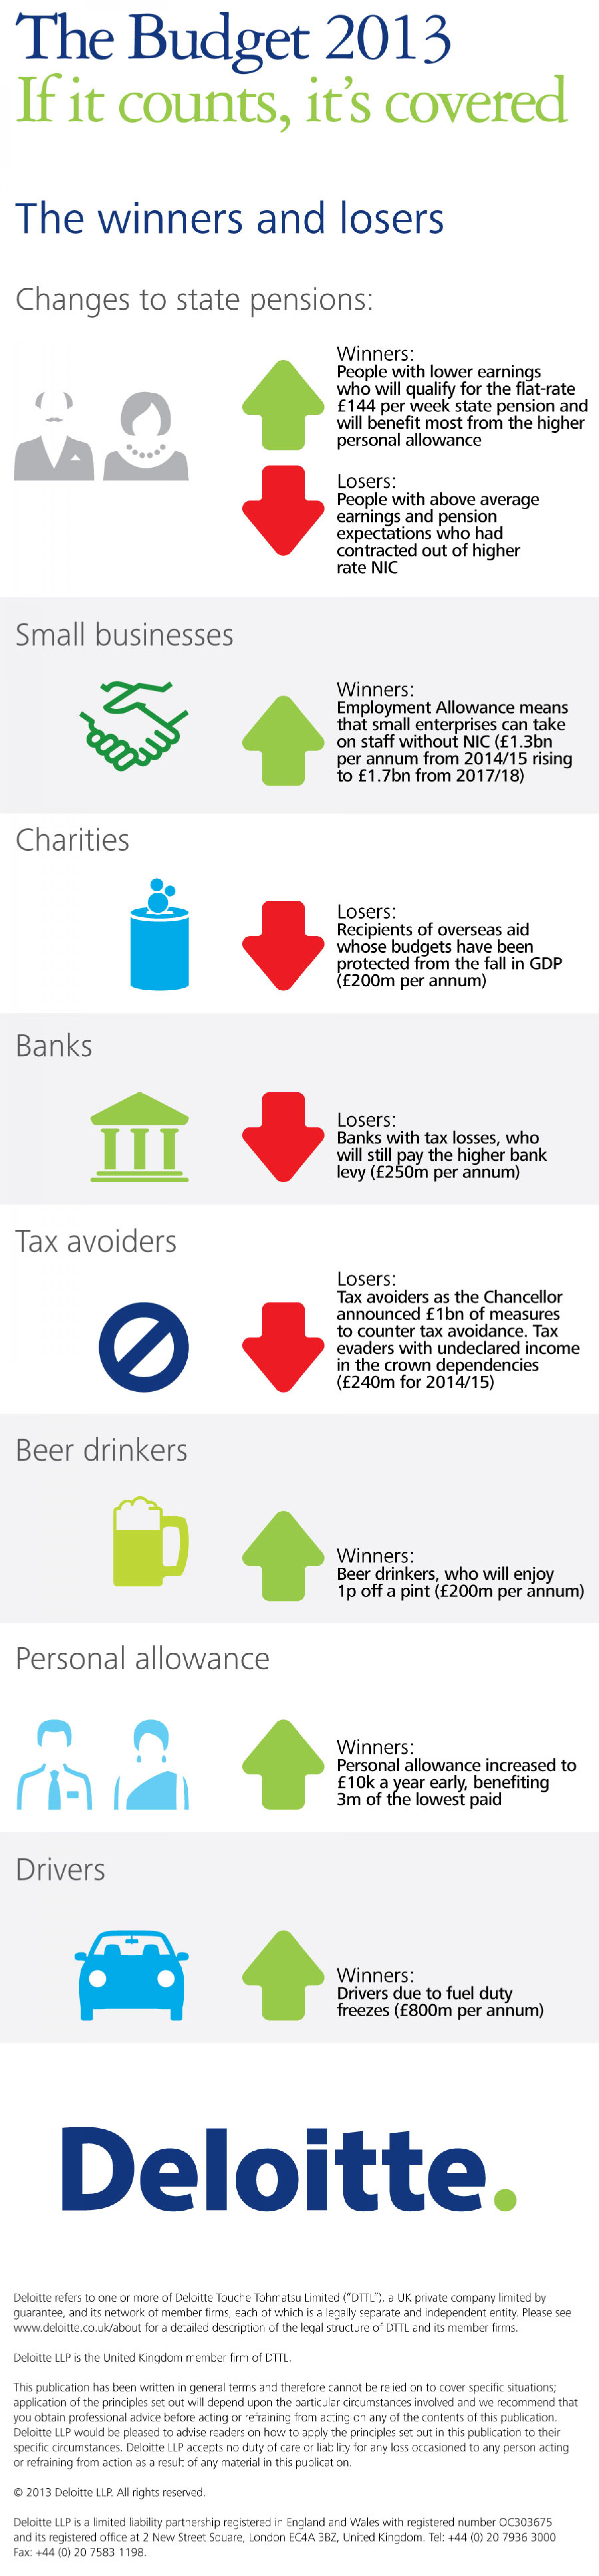 Budget 2013 Winners and Losers Infographic